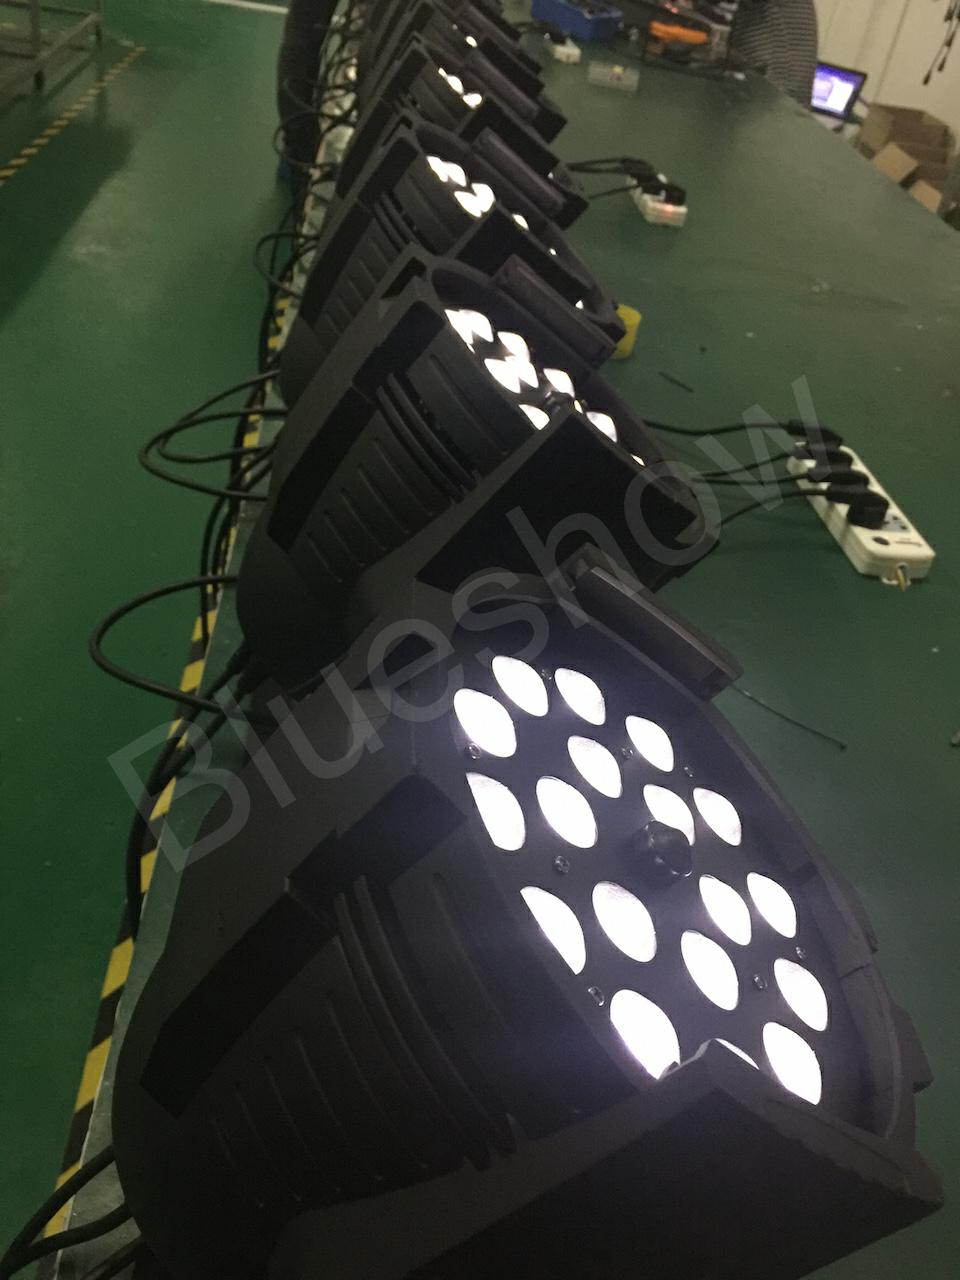 zoom led par light rgbwauv 6in1 18x15w